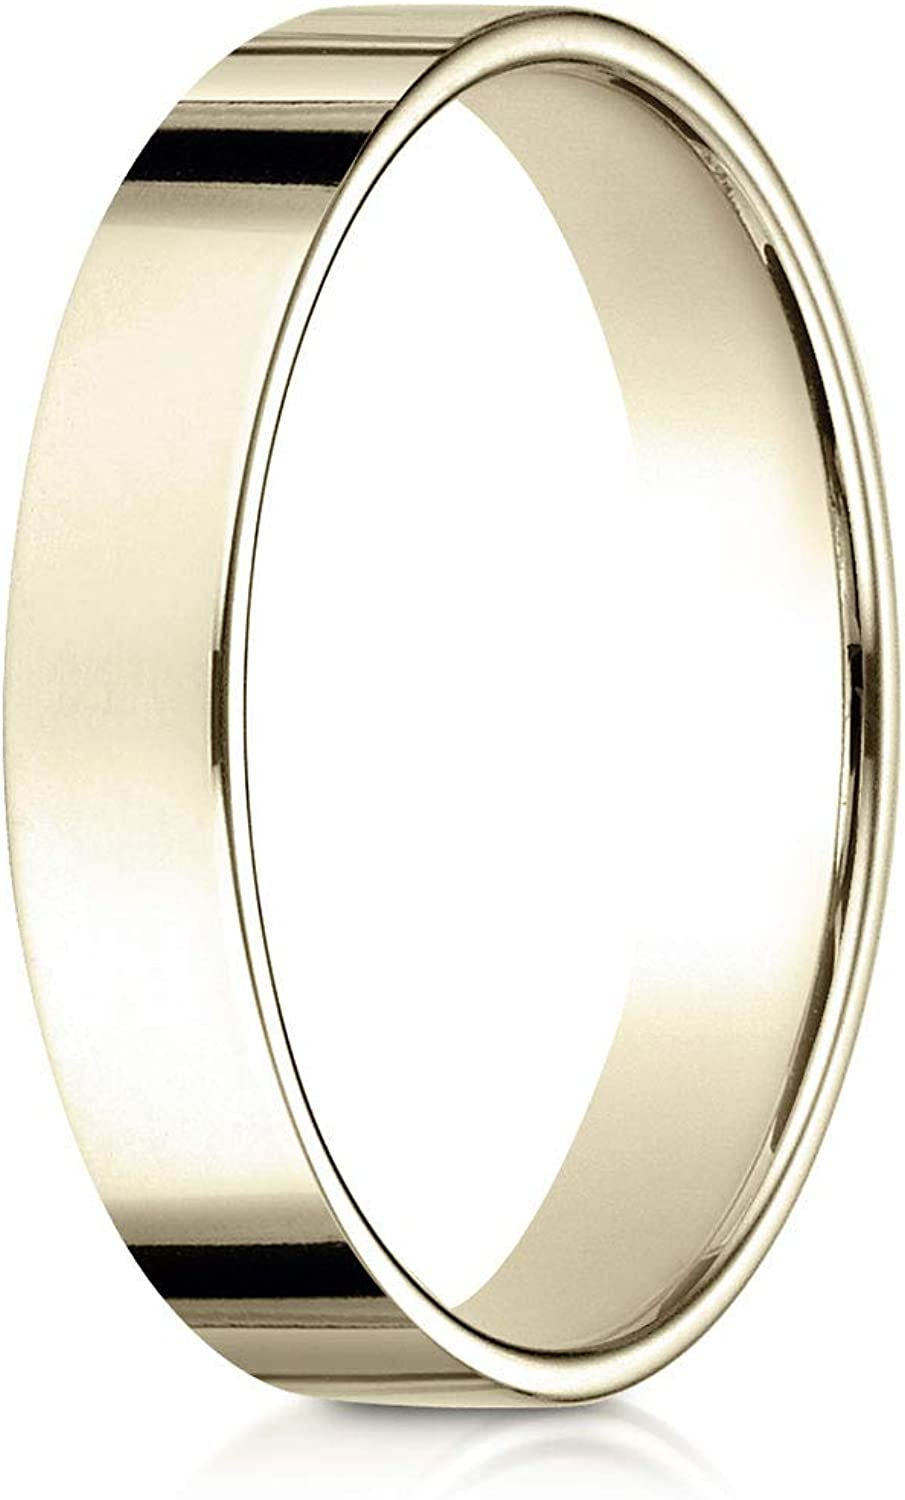 4MM Width Mens or Womens 14K Gold 18K Gold or Platinum Wedding Band